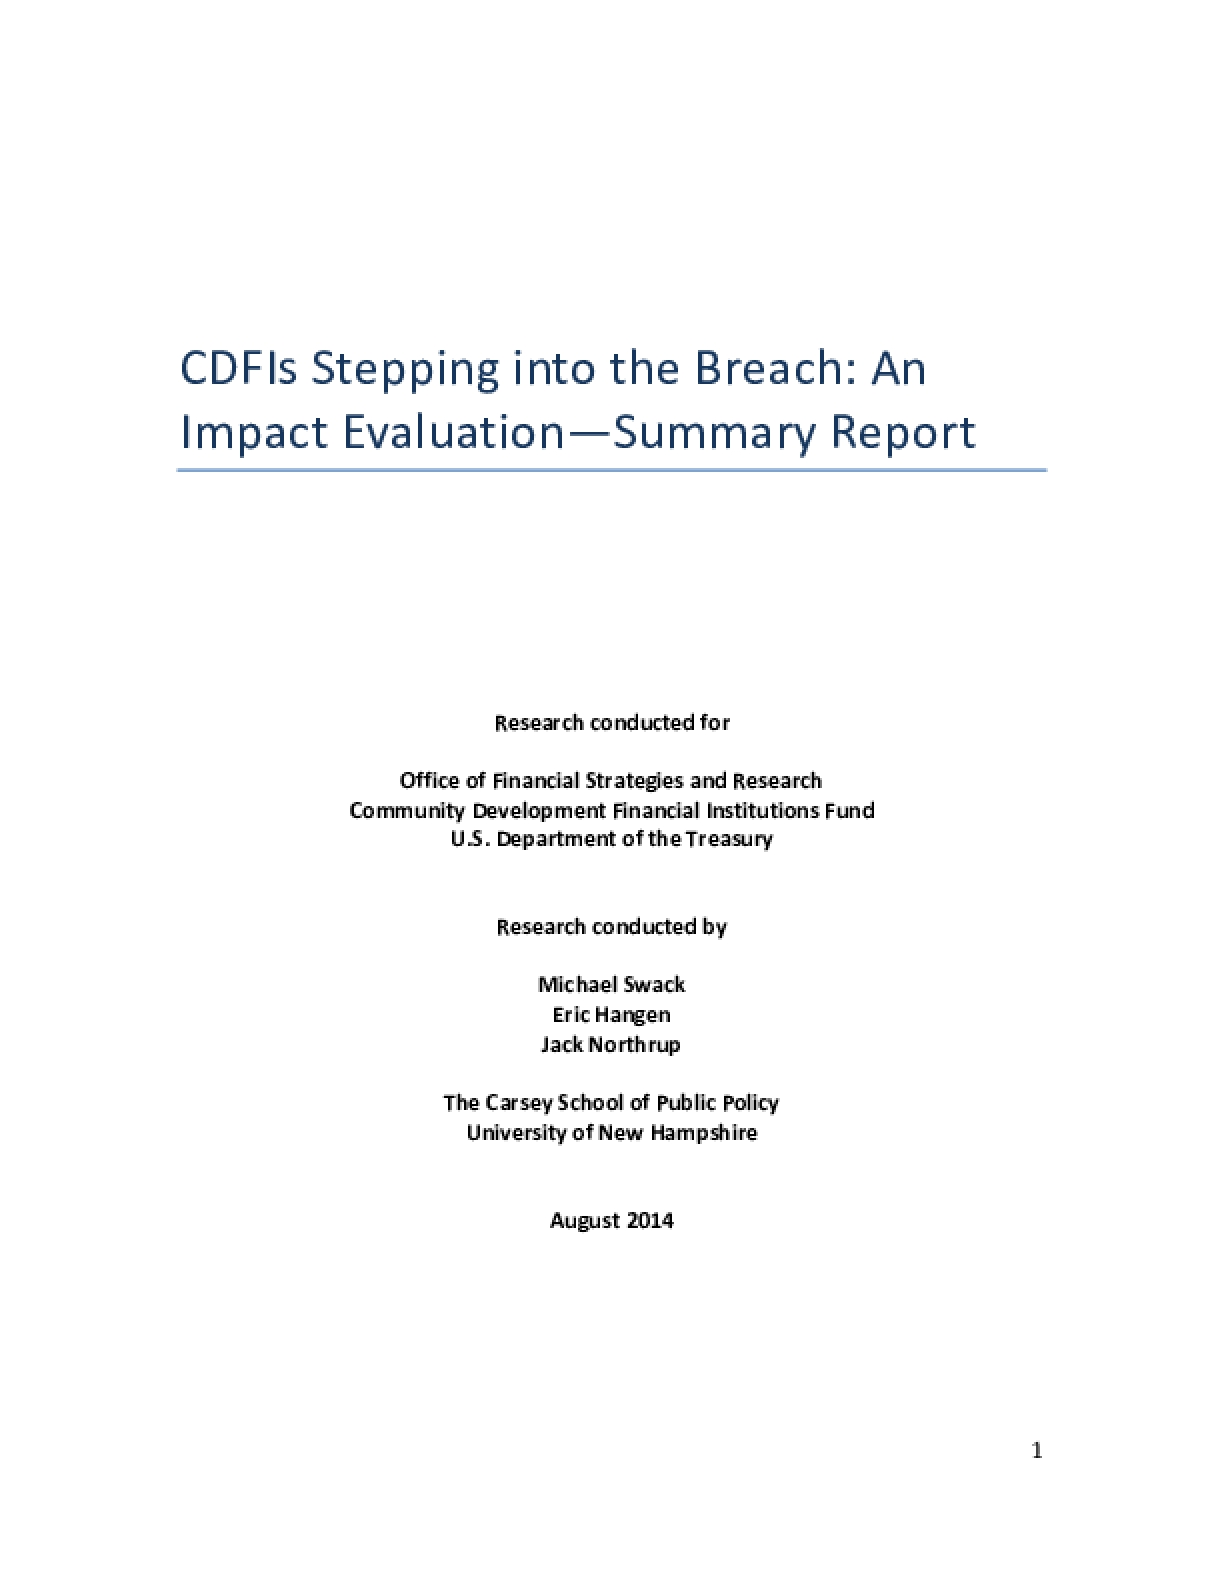 CDFIs Stepping into the Breach: An Impact Evaluation, Summary Report